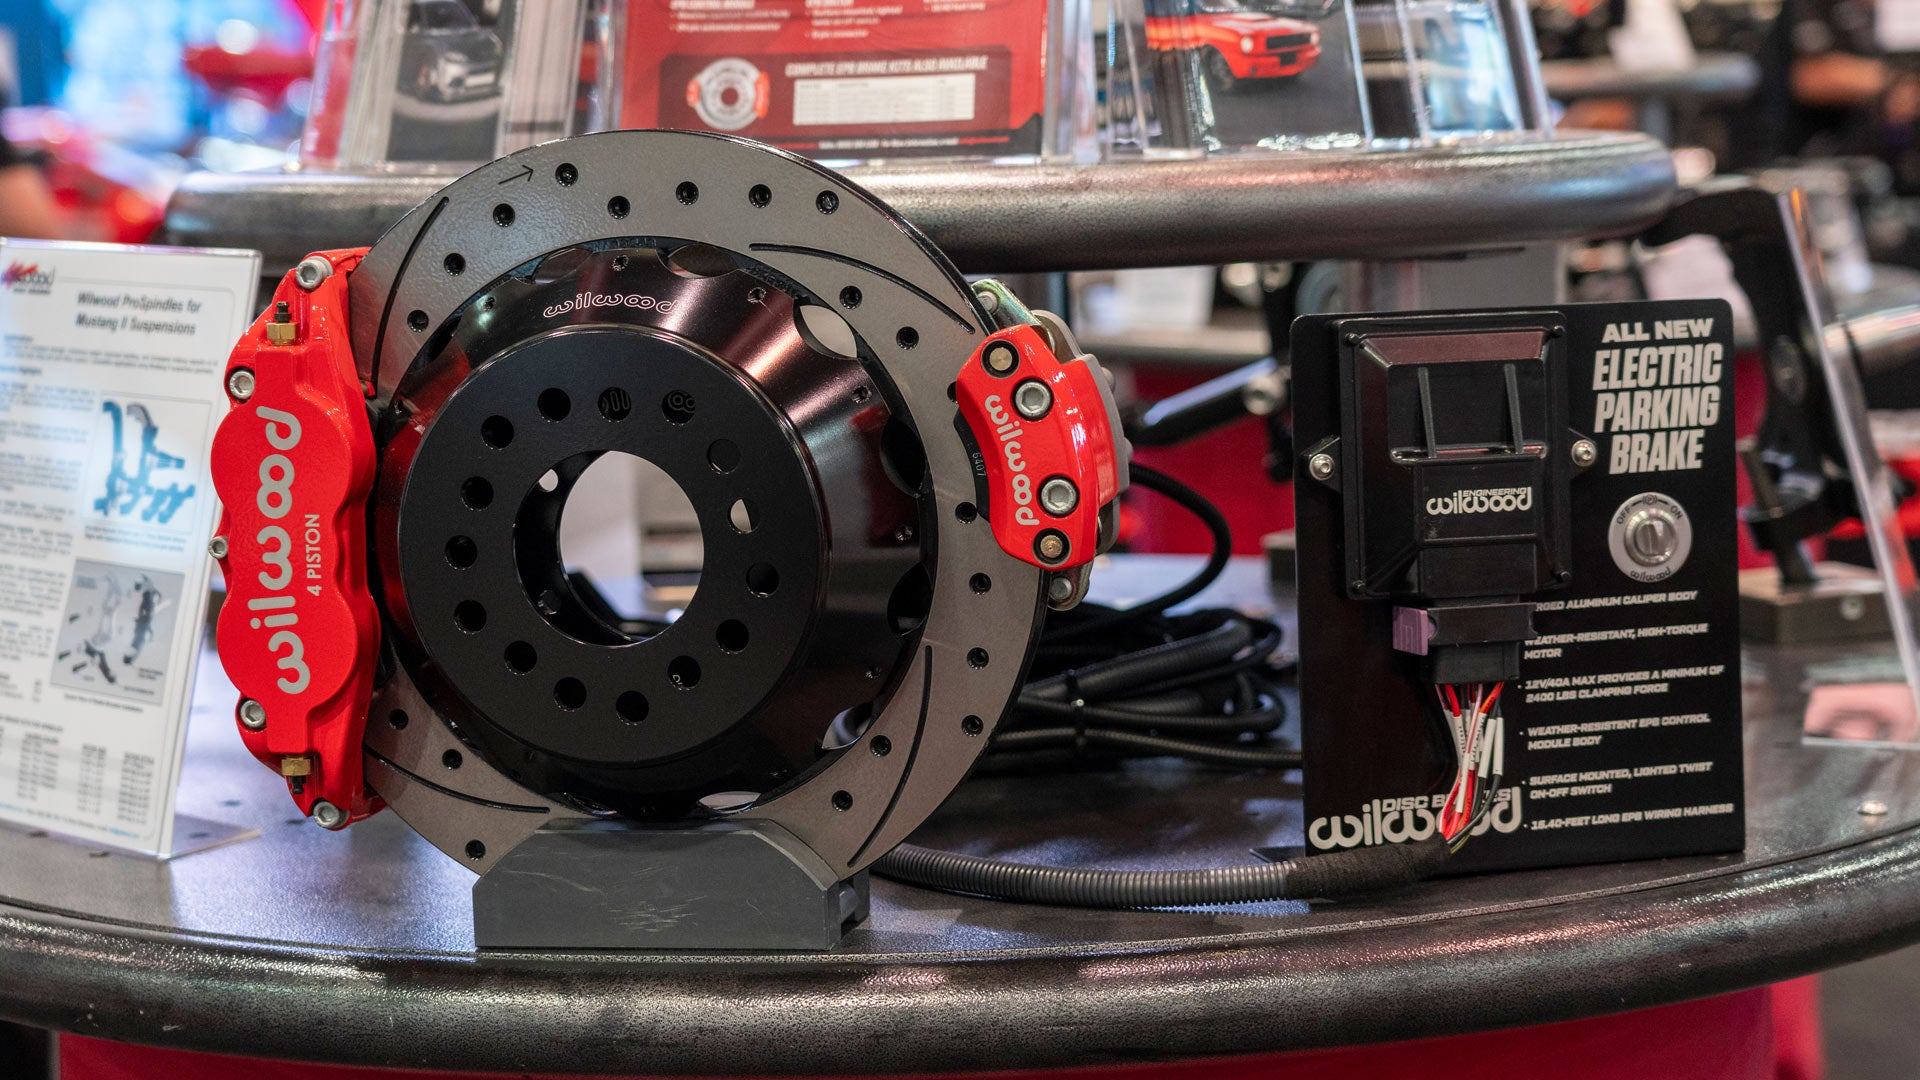 Wilwood's new Electric Parking Brake on display at SEMA show 2019